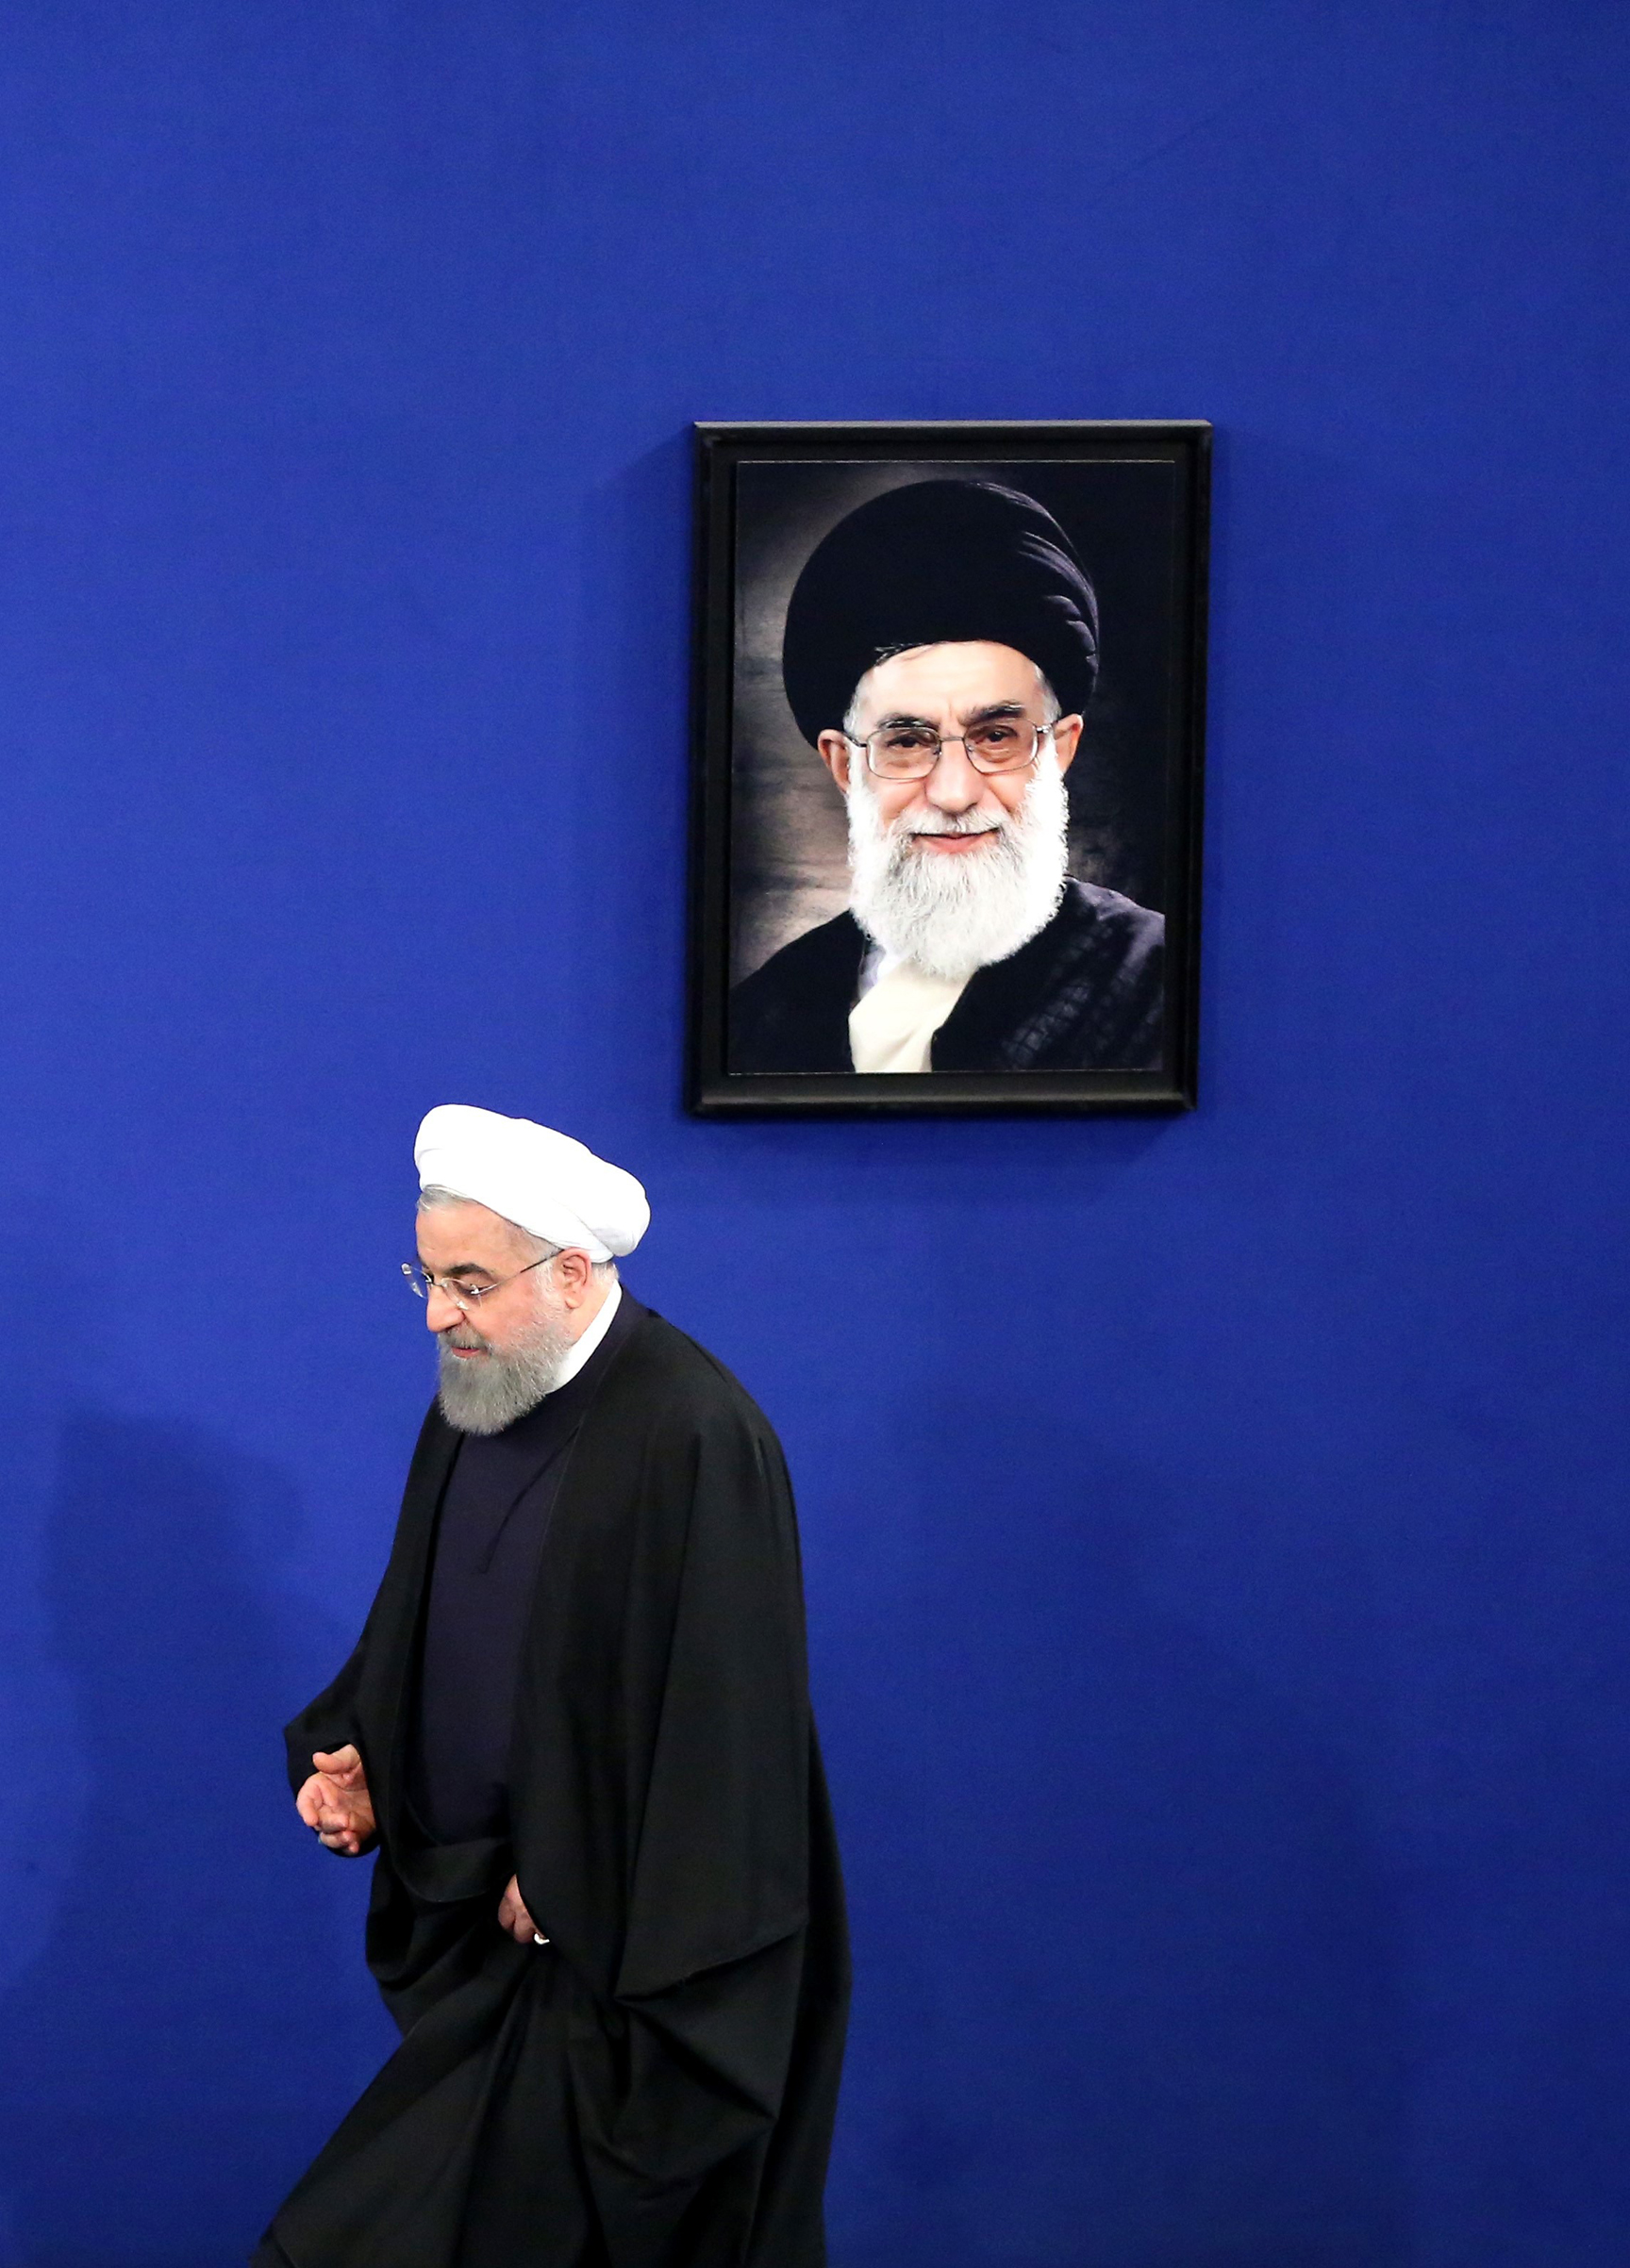 Hanging In The Balance Iranian President Hassan Rouhani has said the nuclear deal is not up for